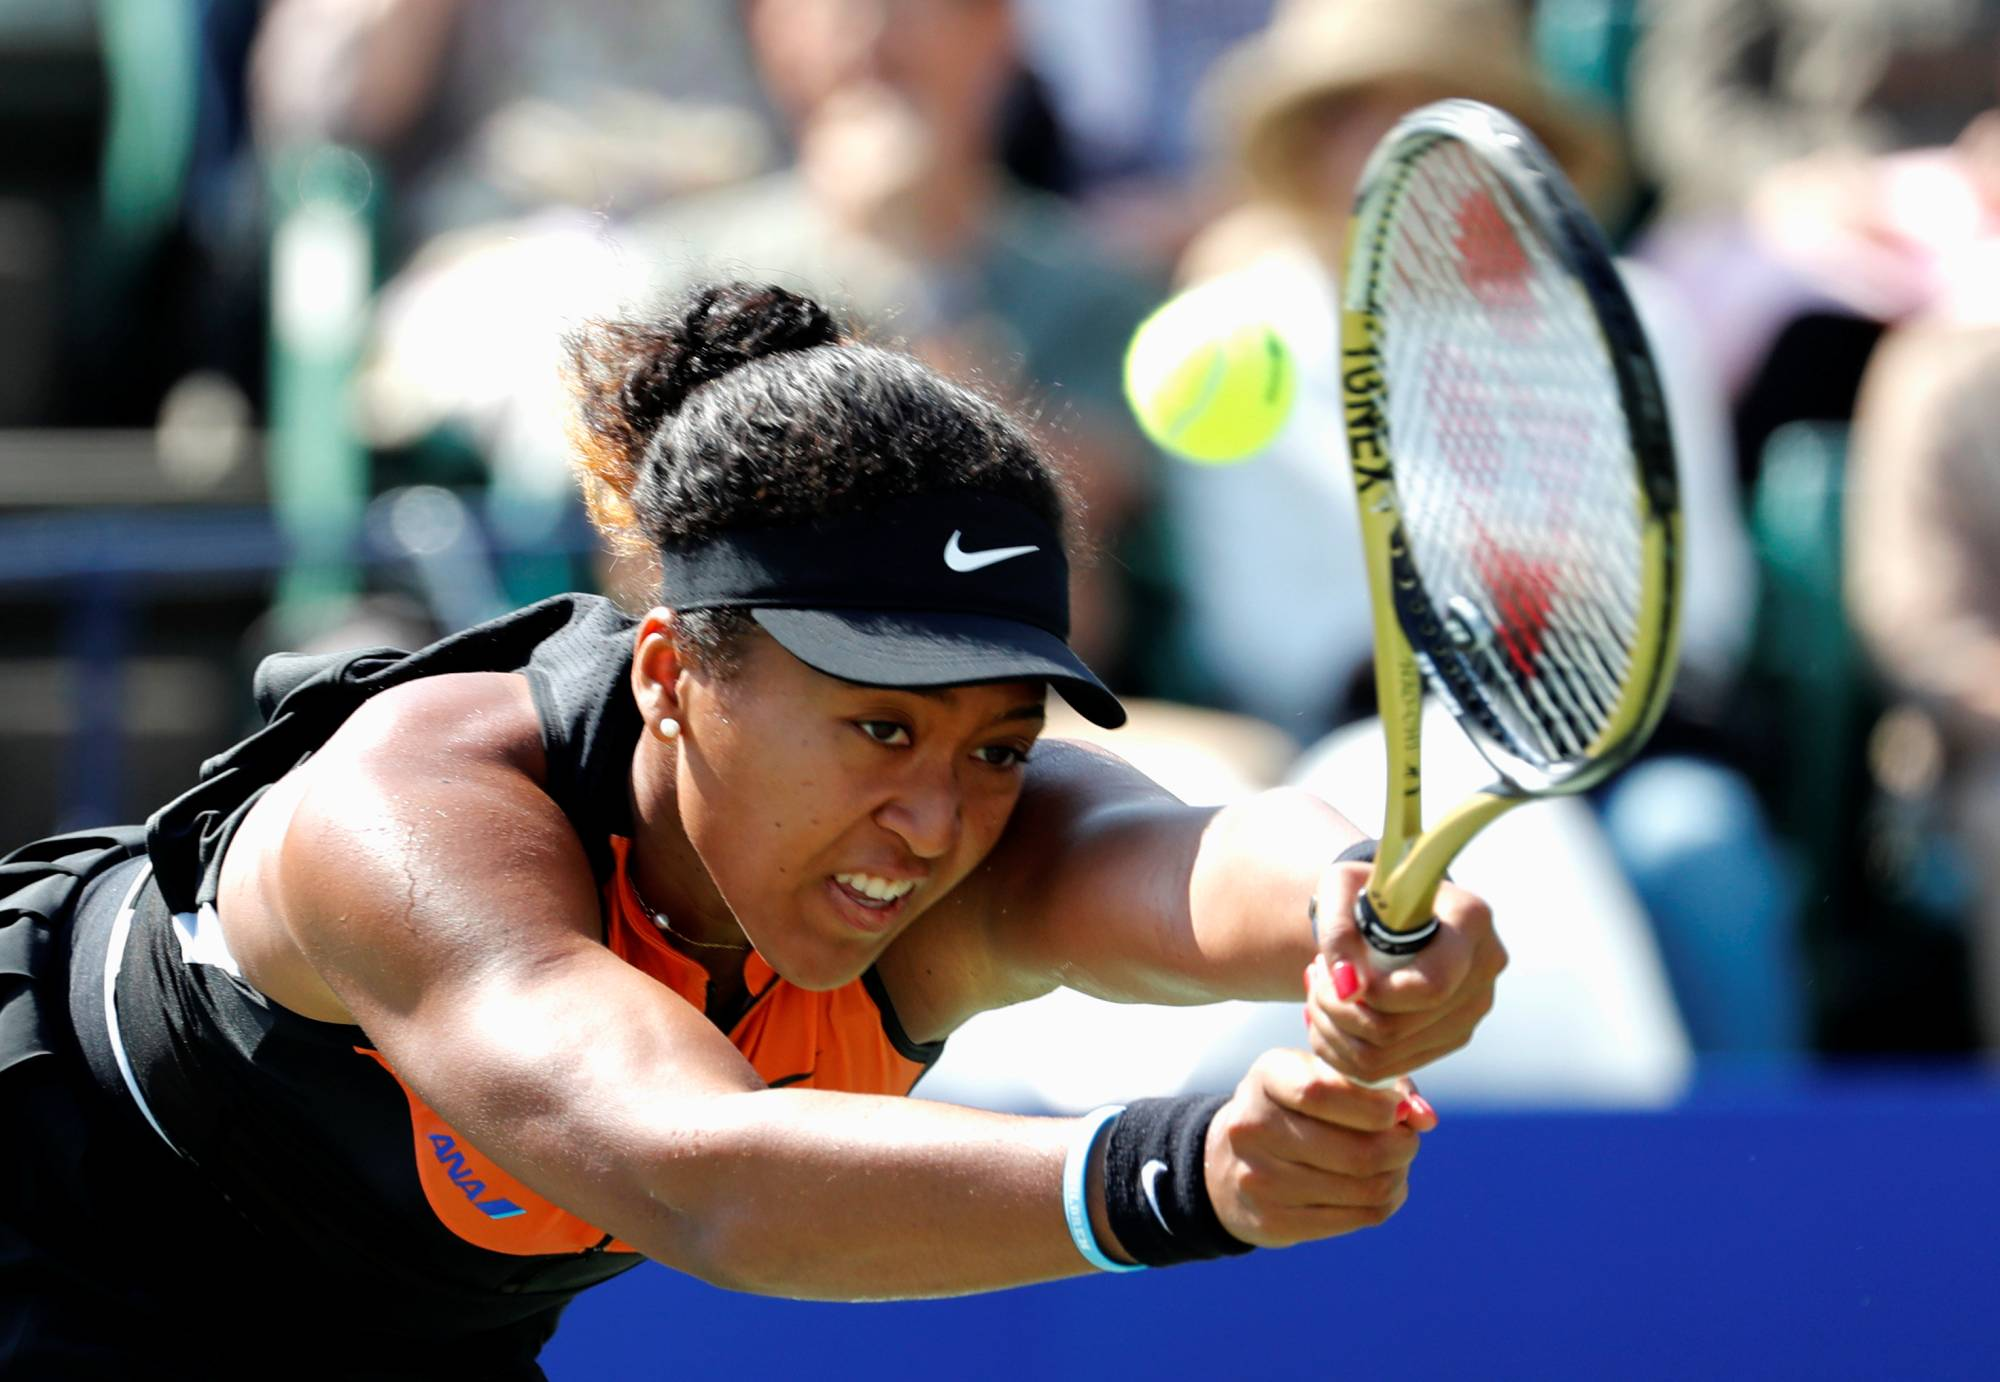 Naomi Osaka returns the ball during her Pan Pacific Open quarterfinal match on Sept. 21 in Osaka. | REUTERS